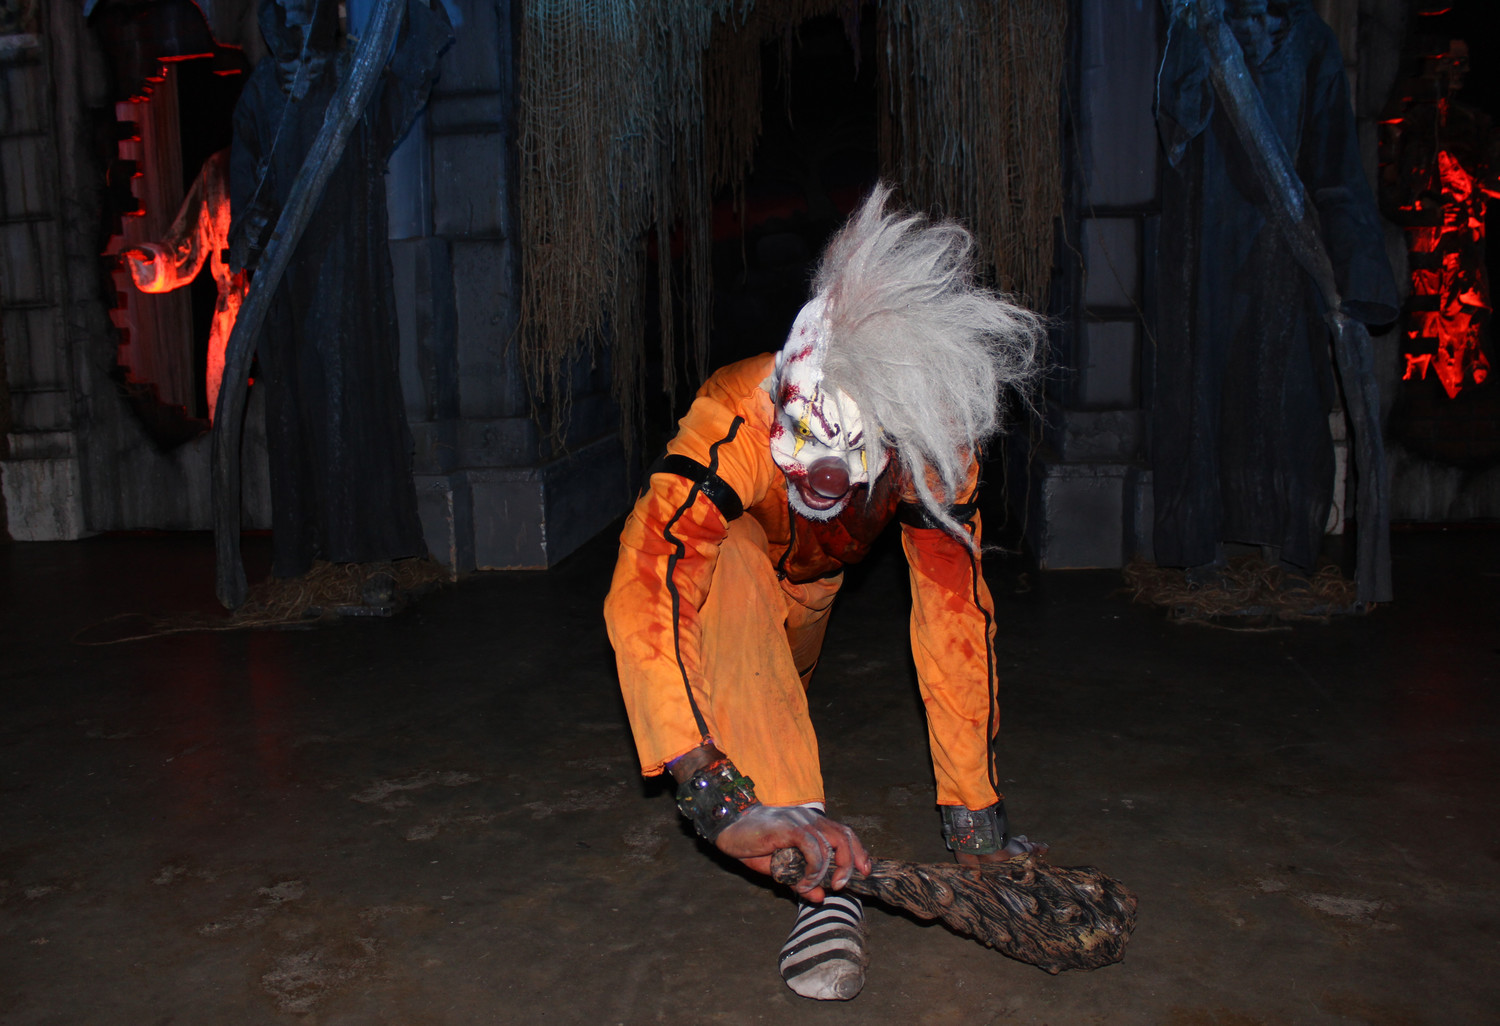 A scary clown crept outside the entrance of Blood Manor to shock guests waiting on line.